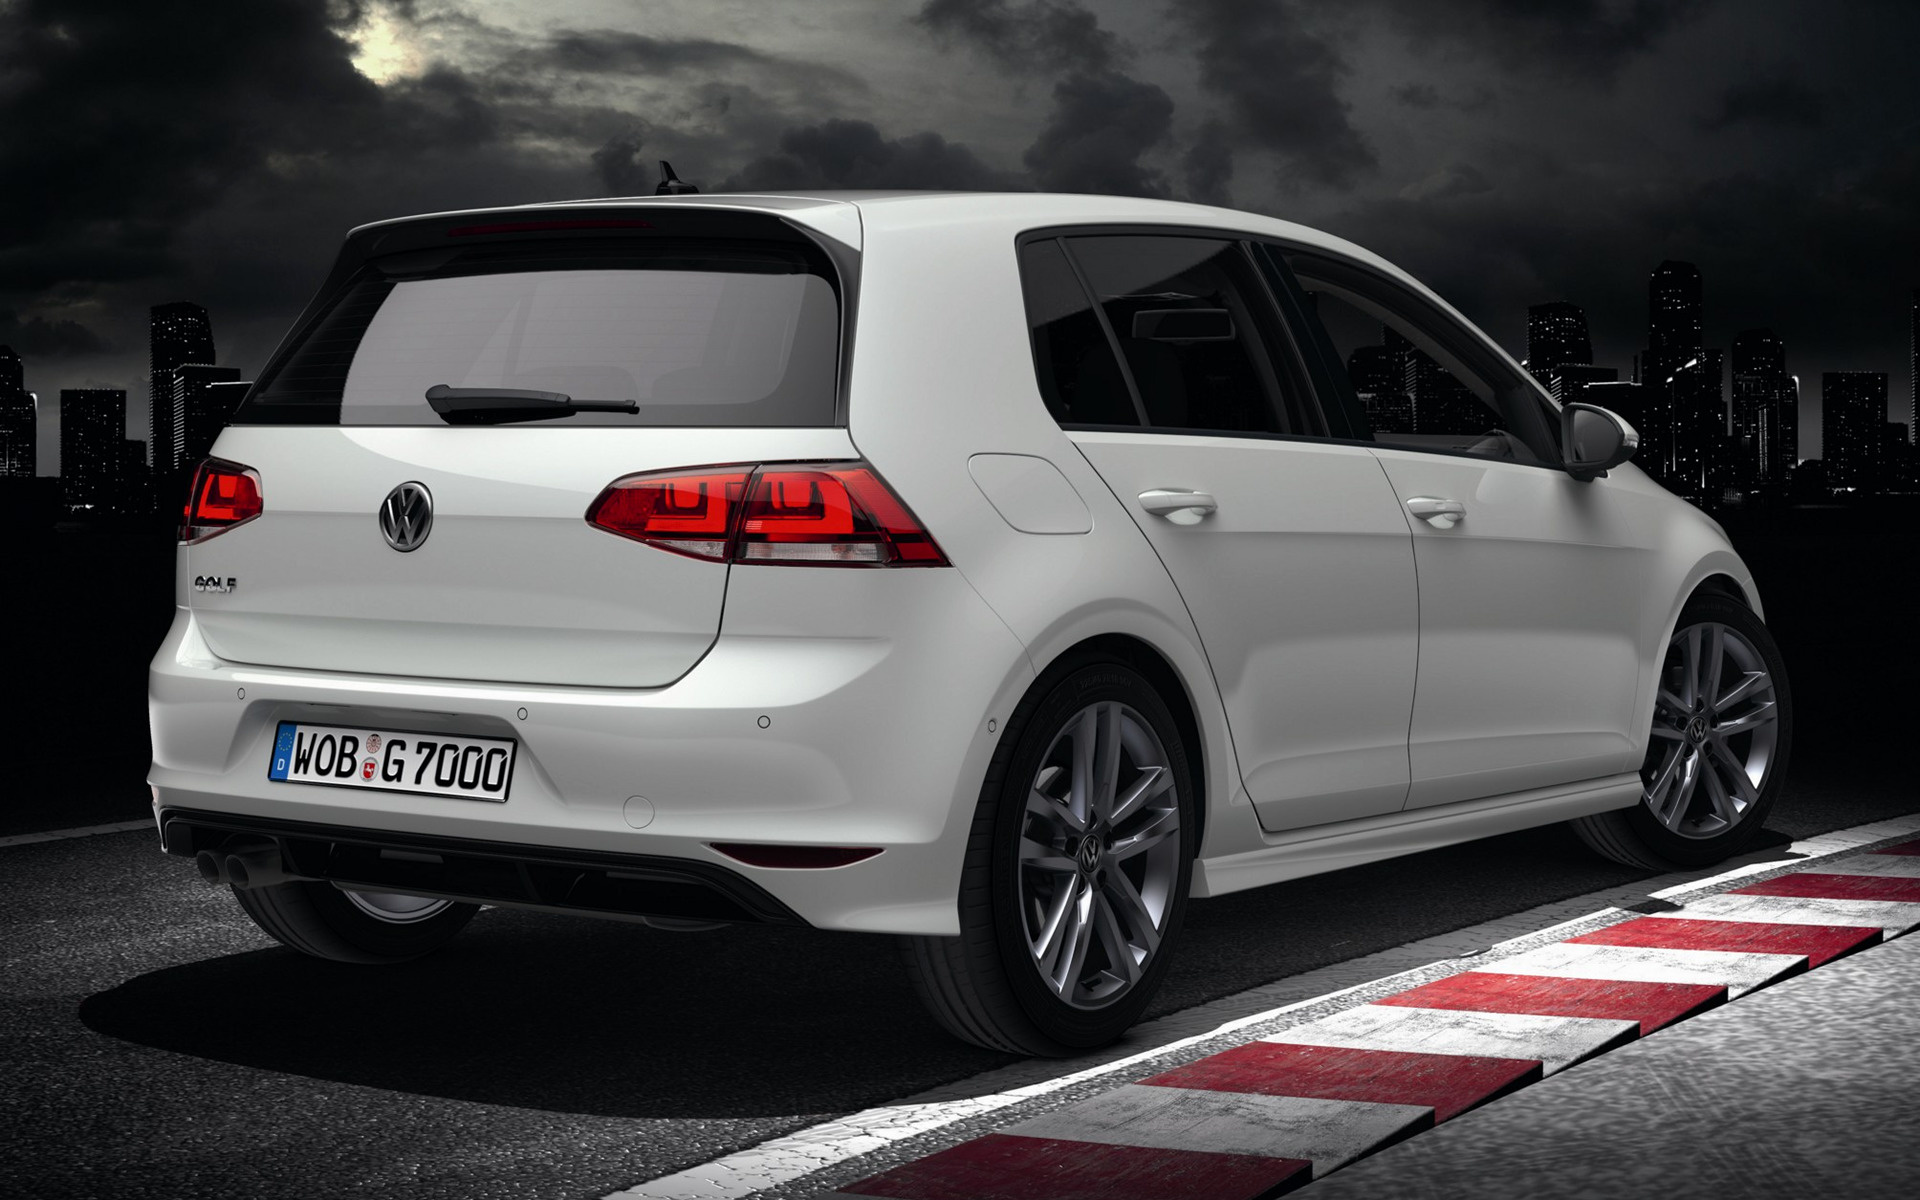 volkswagen golf r line 5 door 2013 wallpapers and hd images car pixel. Black Bedroom Furniture Sets. Home Design Ideas